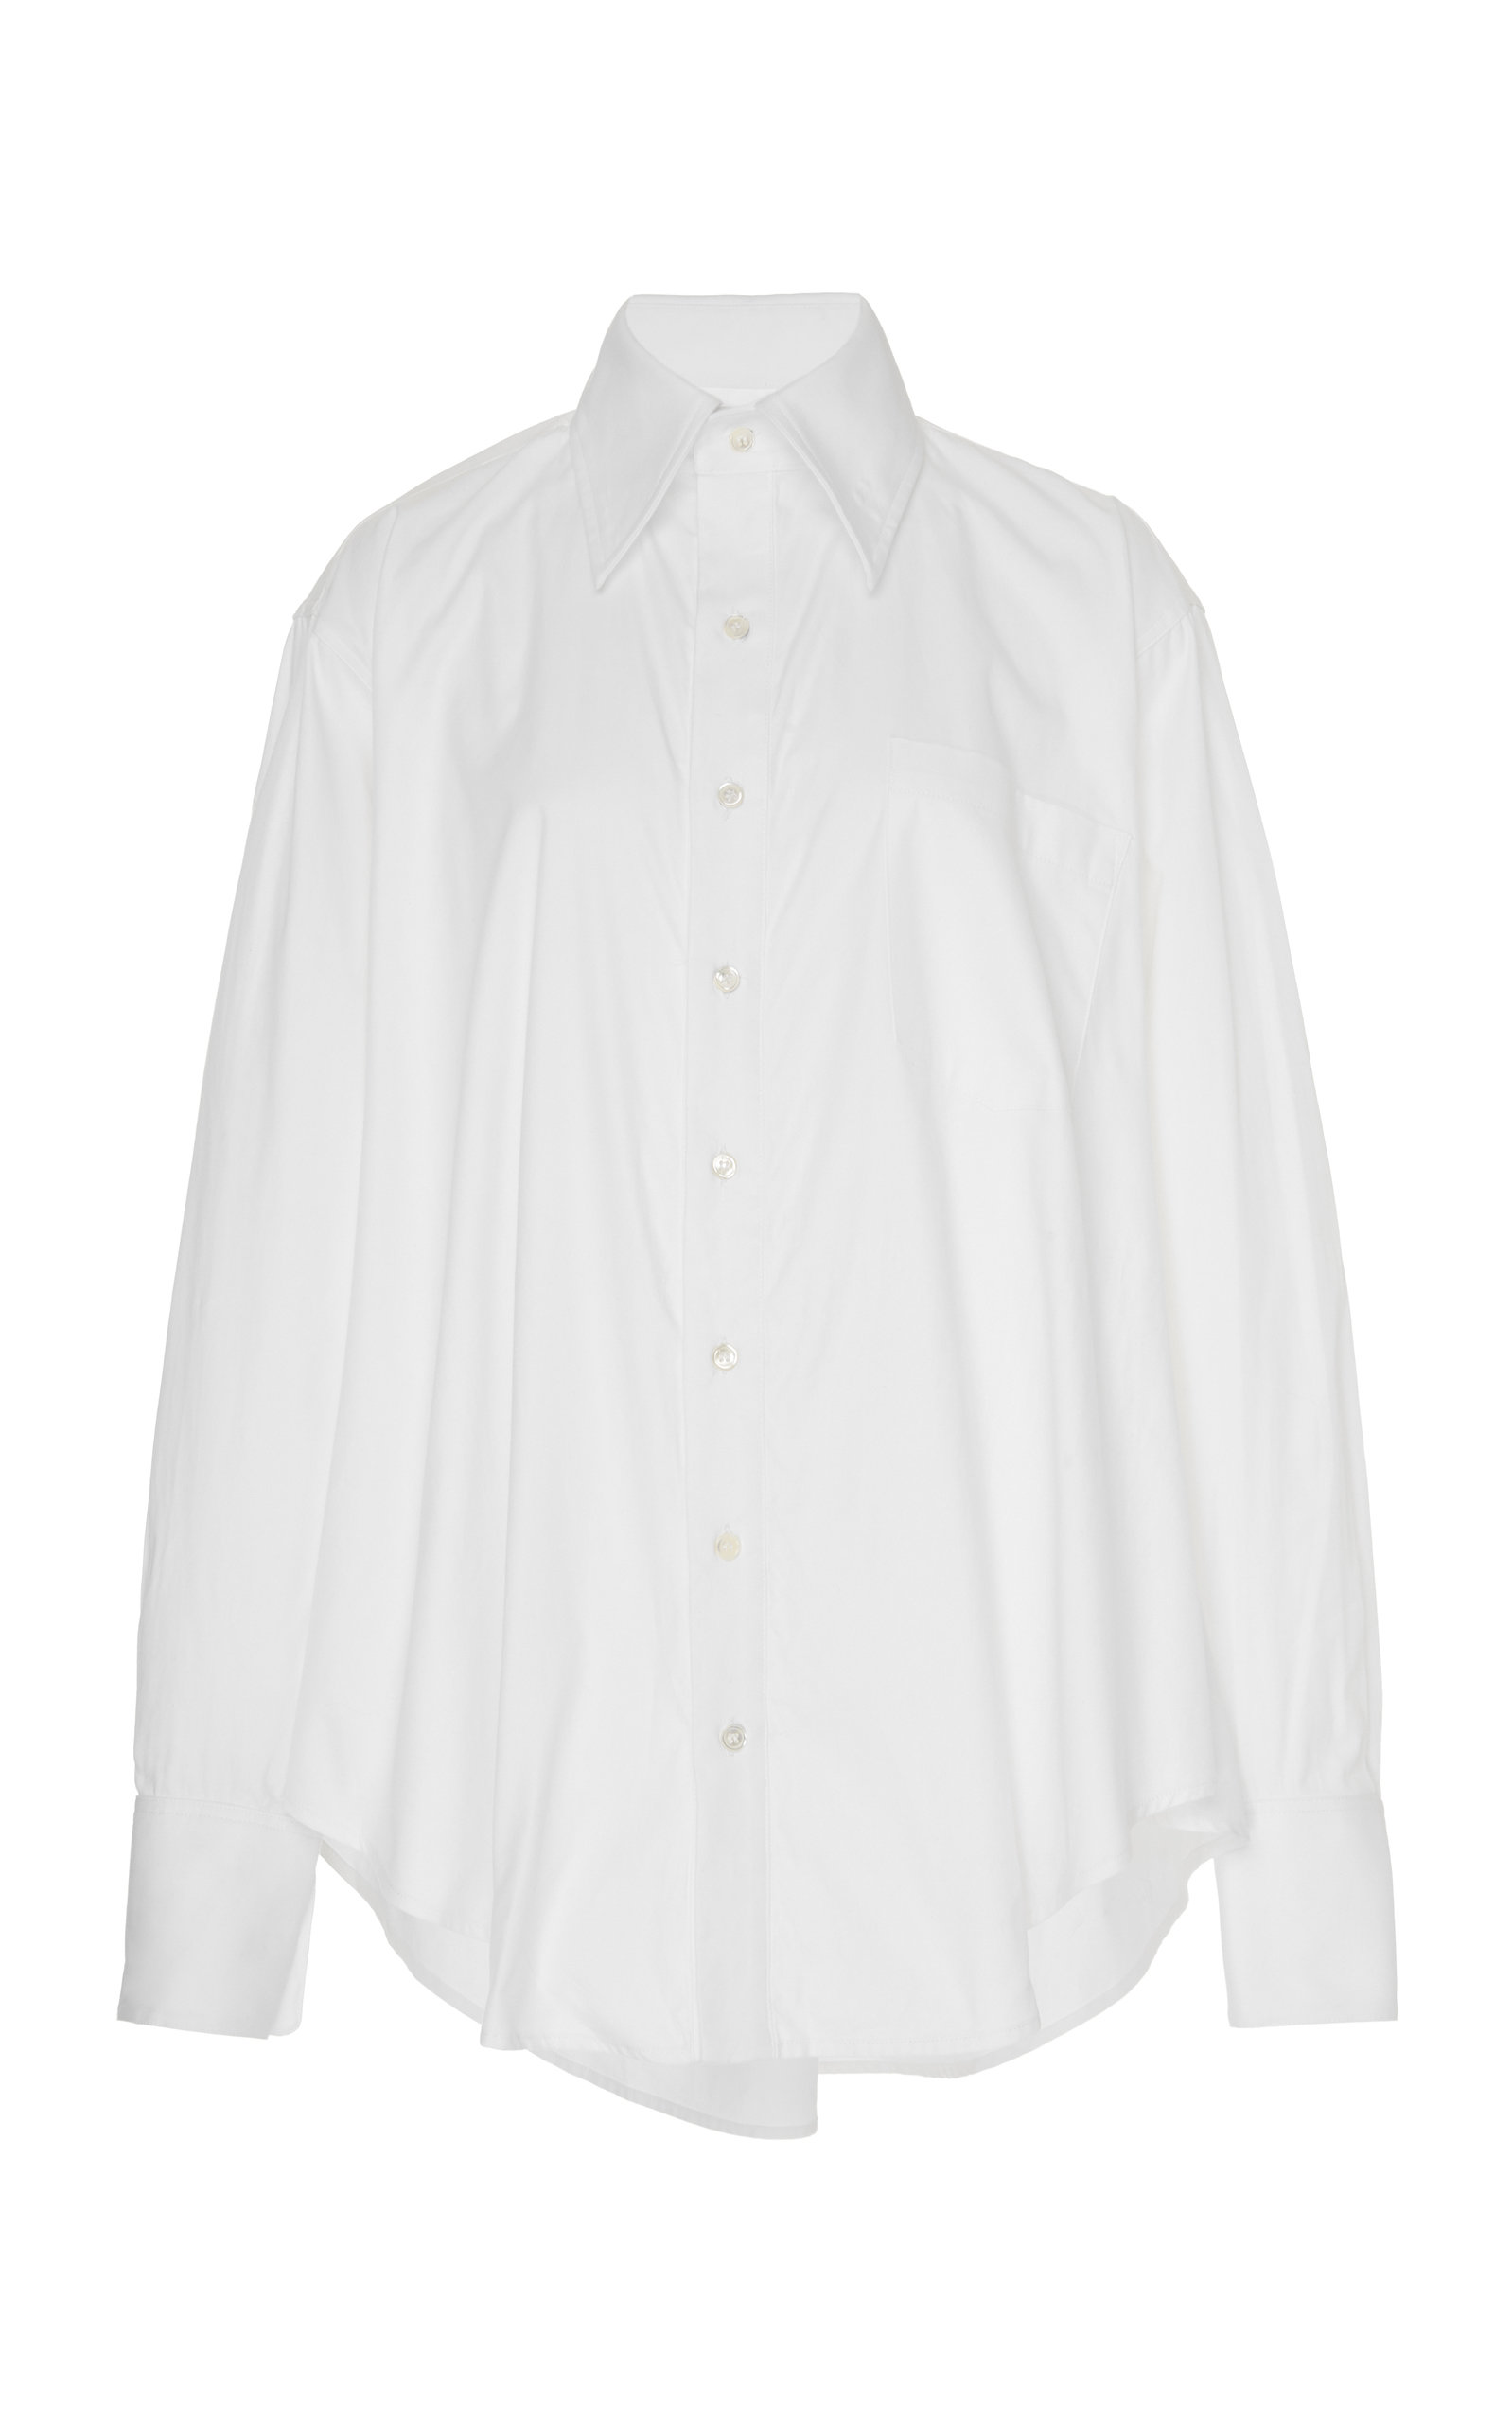 Matthew Adams Dolan COTTON OXFORD SHIRT